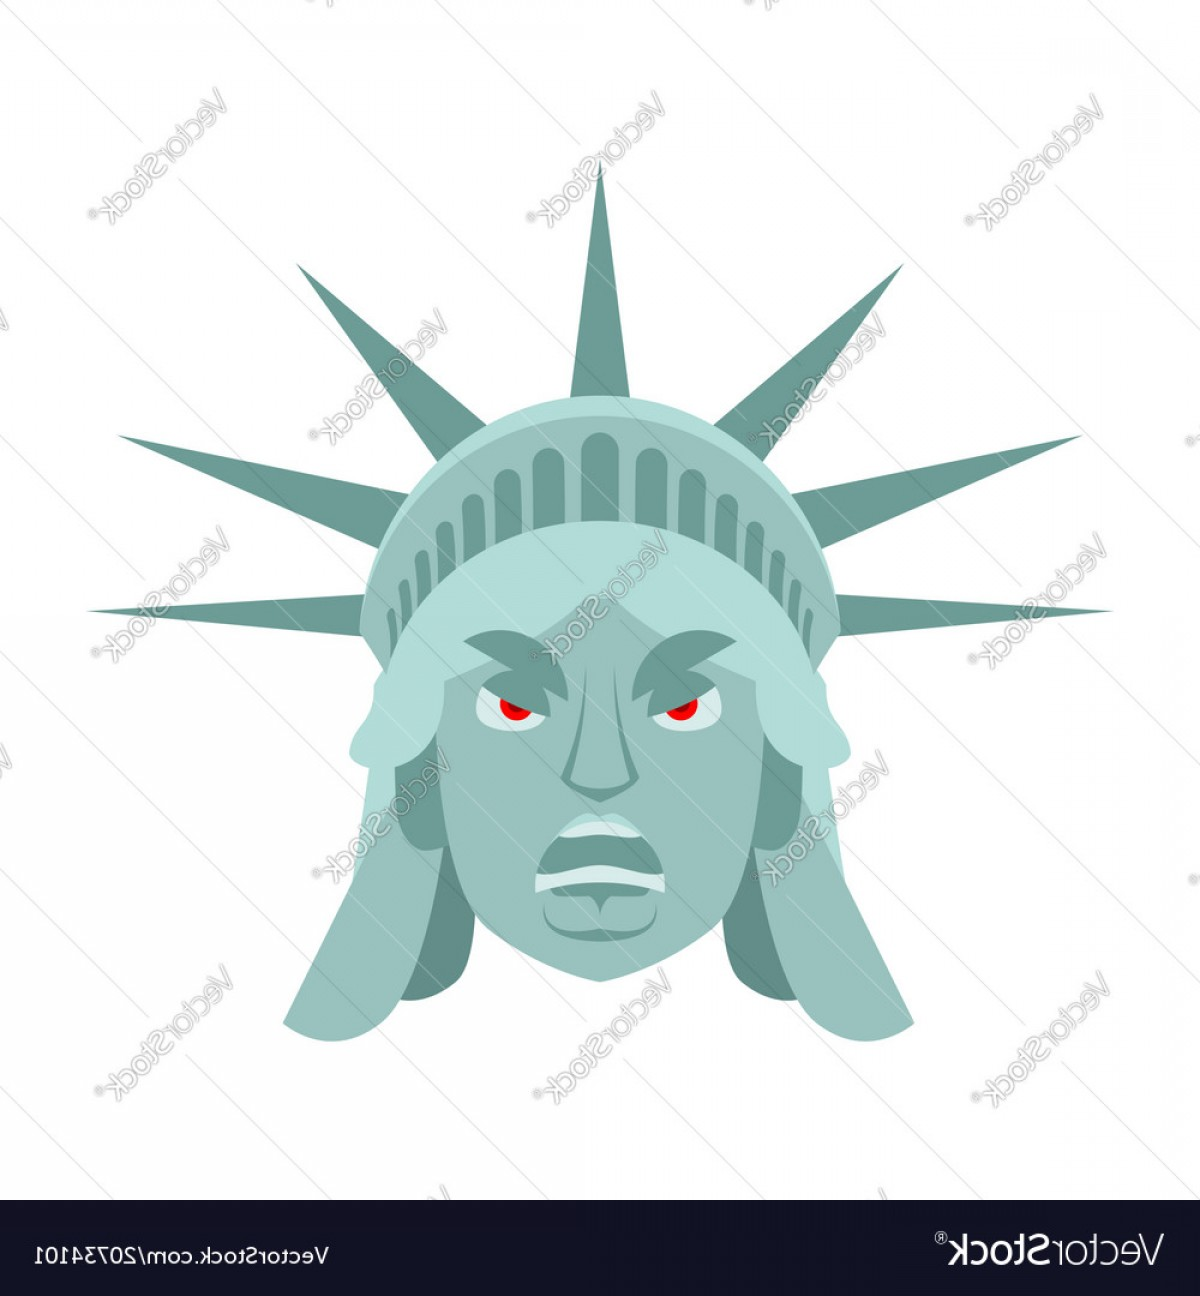 Statue Of Liberty Face Vector: Statue Of Liberty Angry Emoji Us Landmark Statue Vector